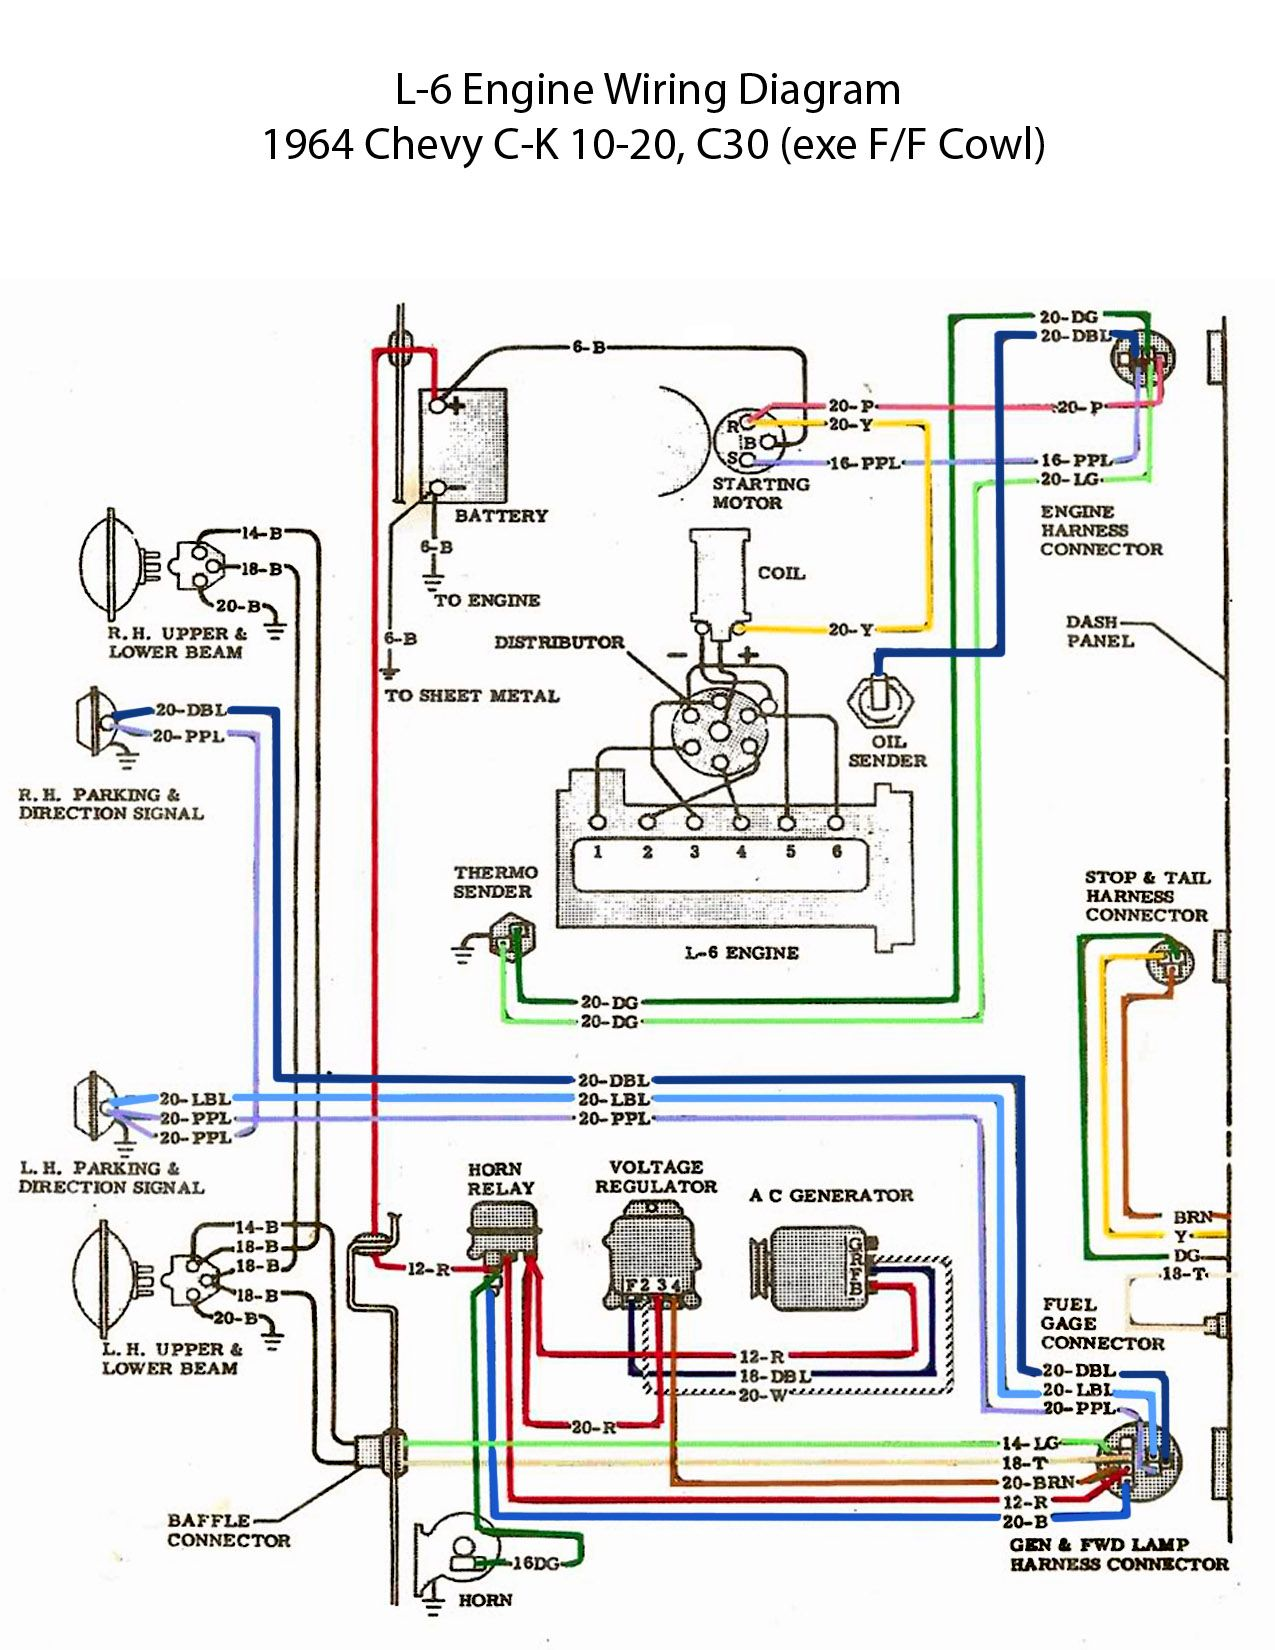 electric l 6 engine wiring diagram 60s chevy c10 wiring rh pinterest com 1991 Chevy Truck Wiring Harness 2007 Chevy Wiring Harness Diagram